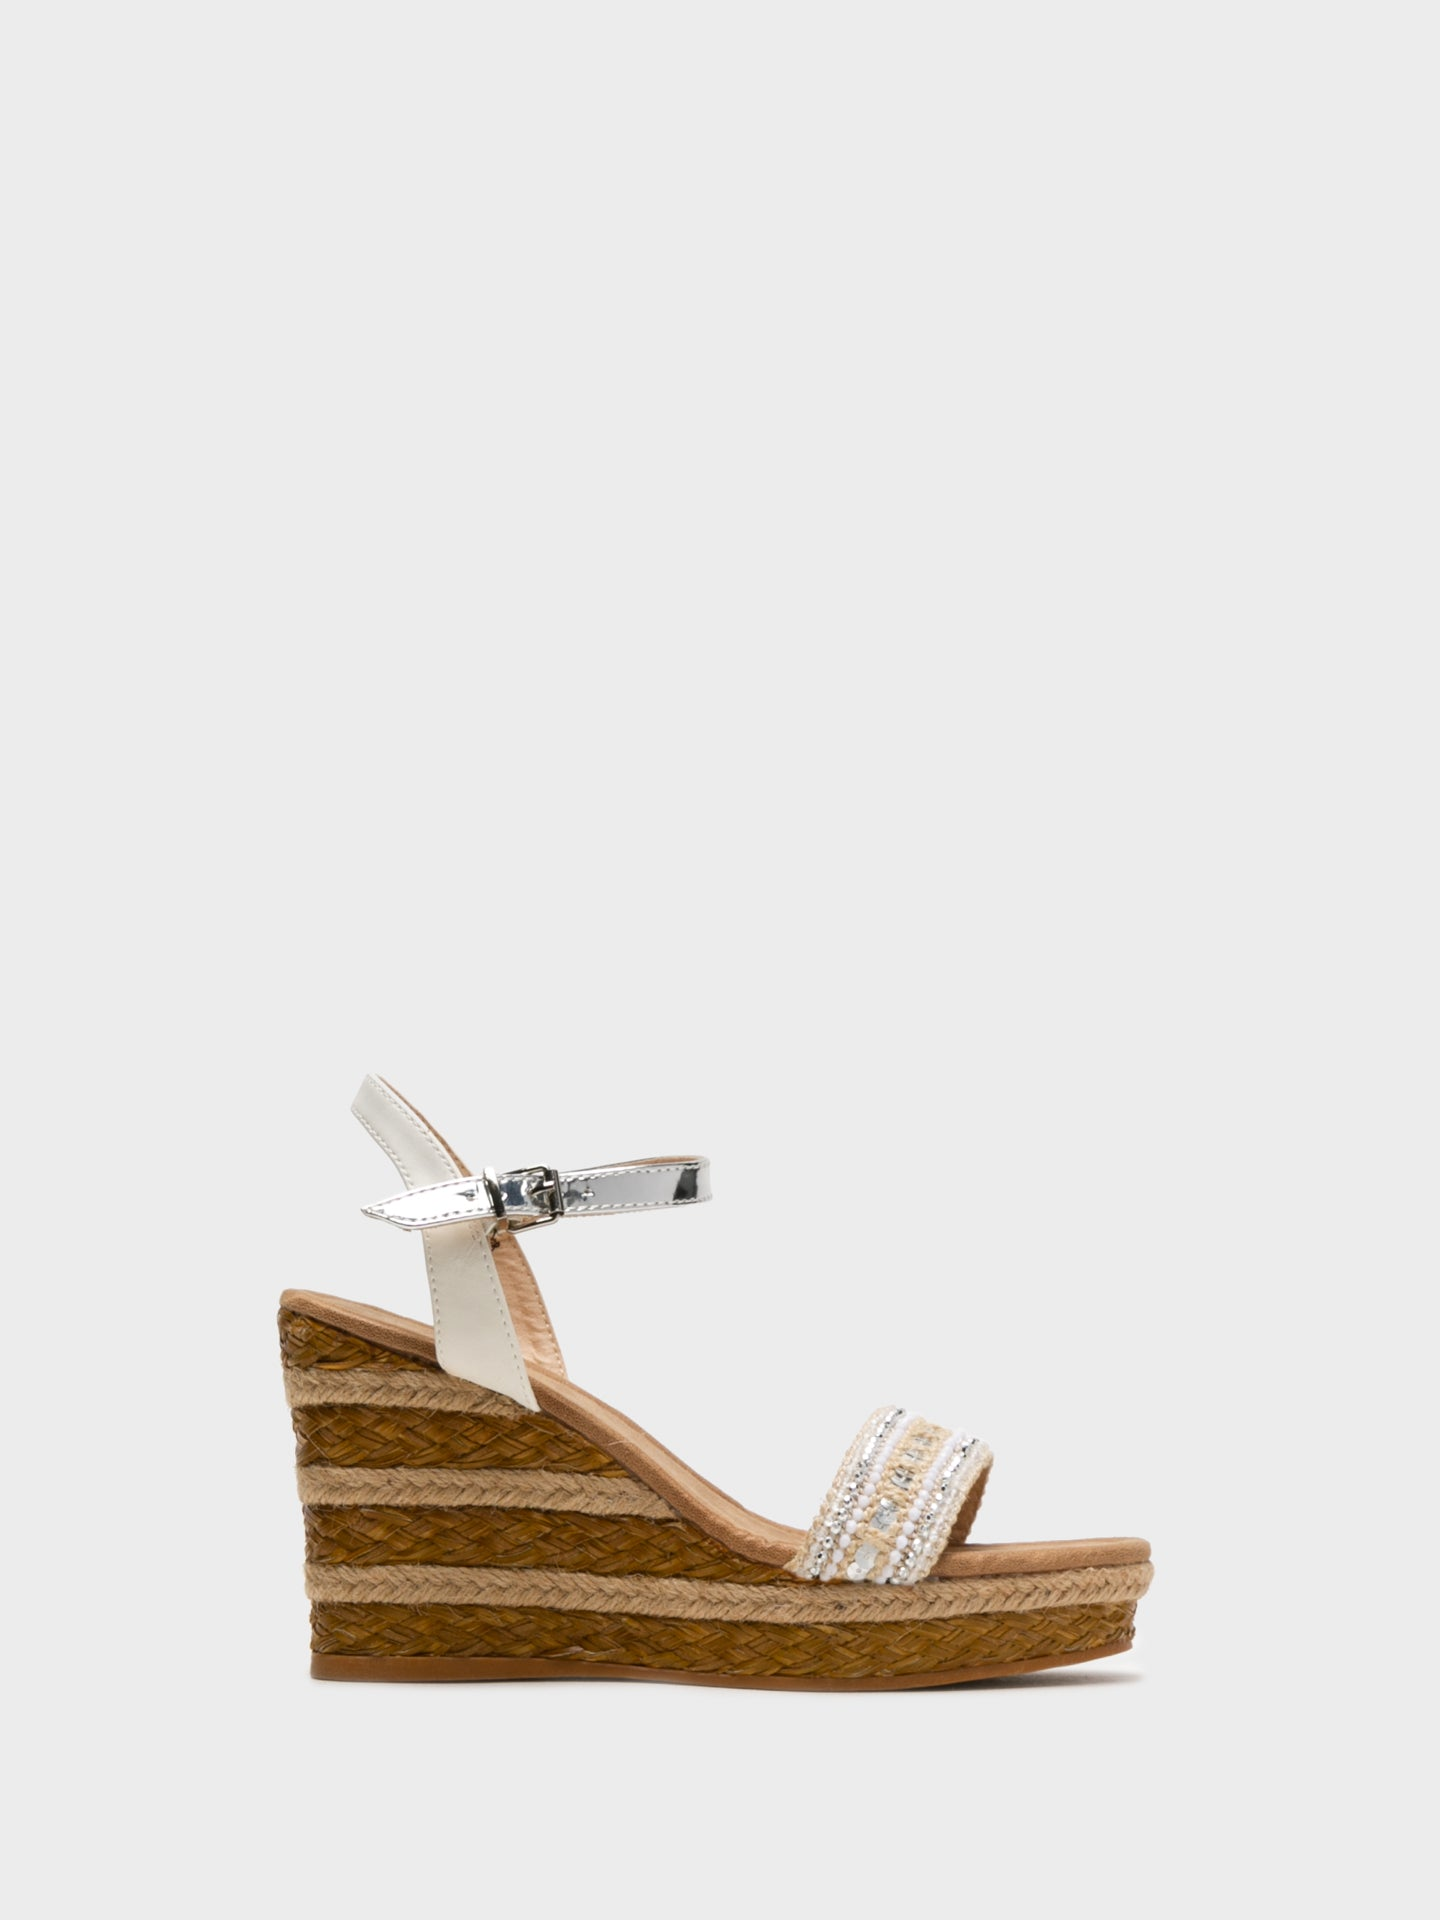 Foreva White Wedge Sandals